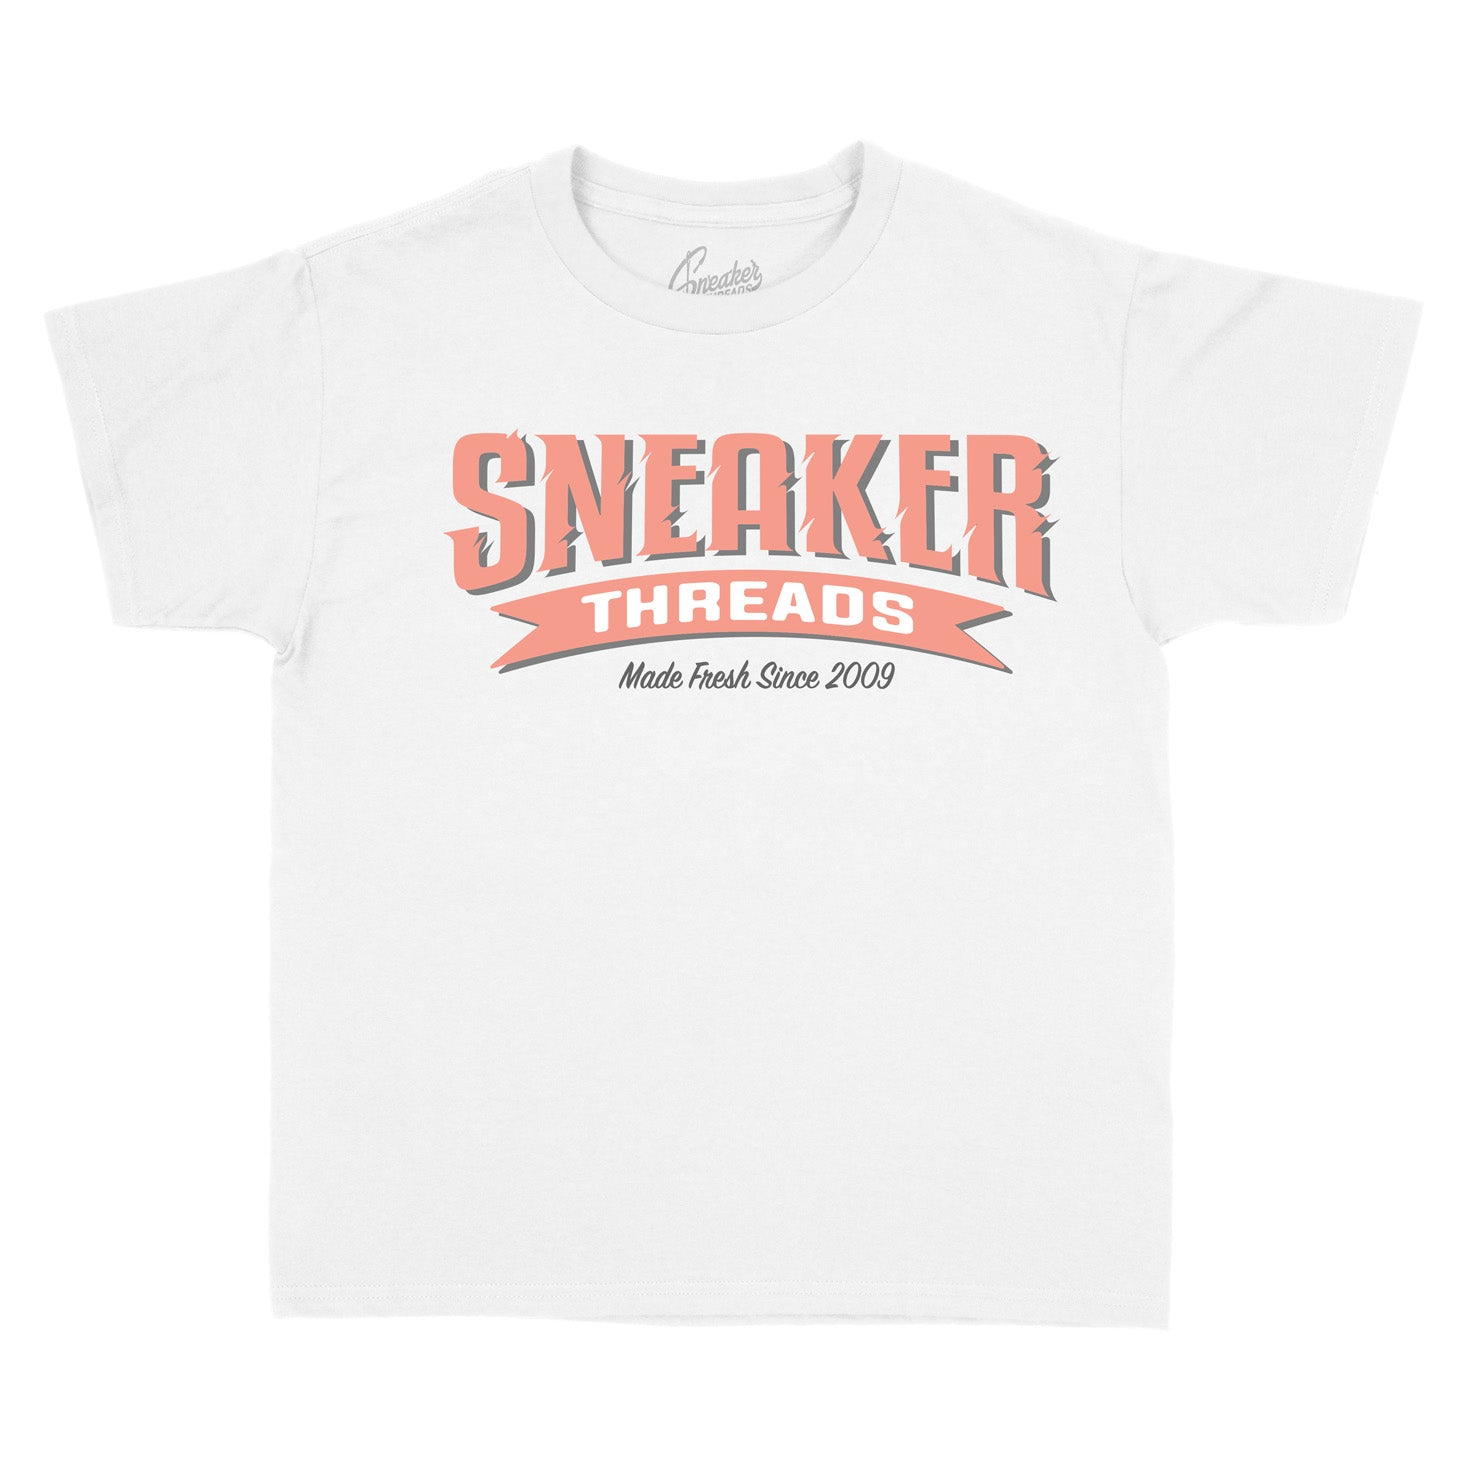 Yeezy inertia 700 sneaker matches yeezy kids shirts designed to match perfect